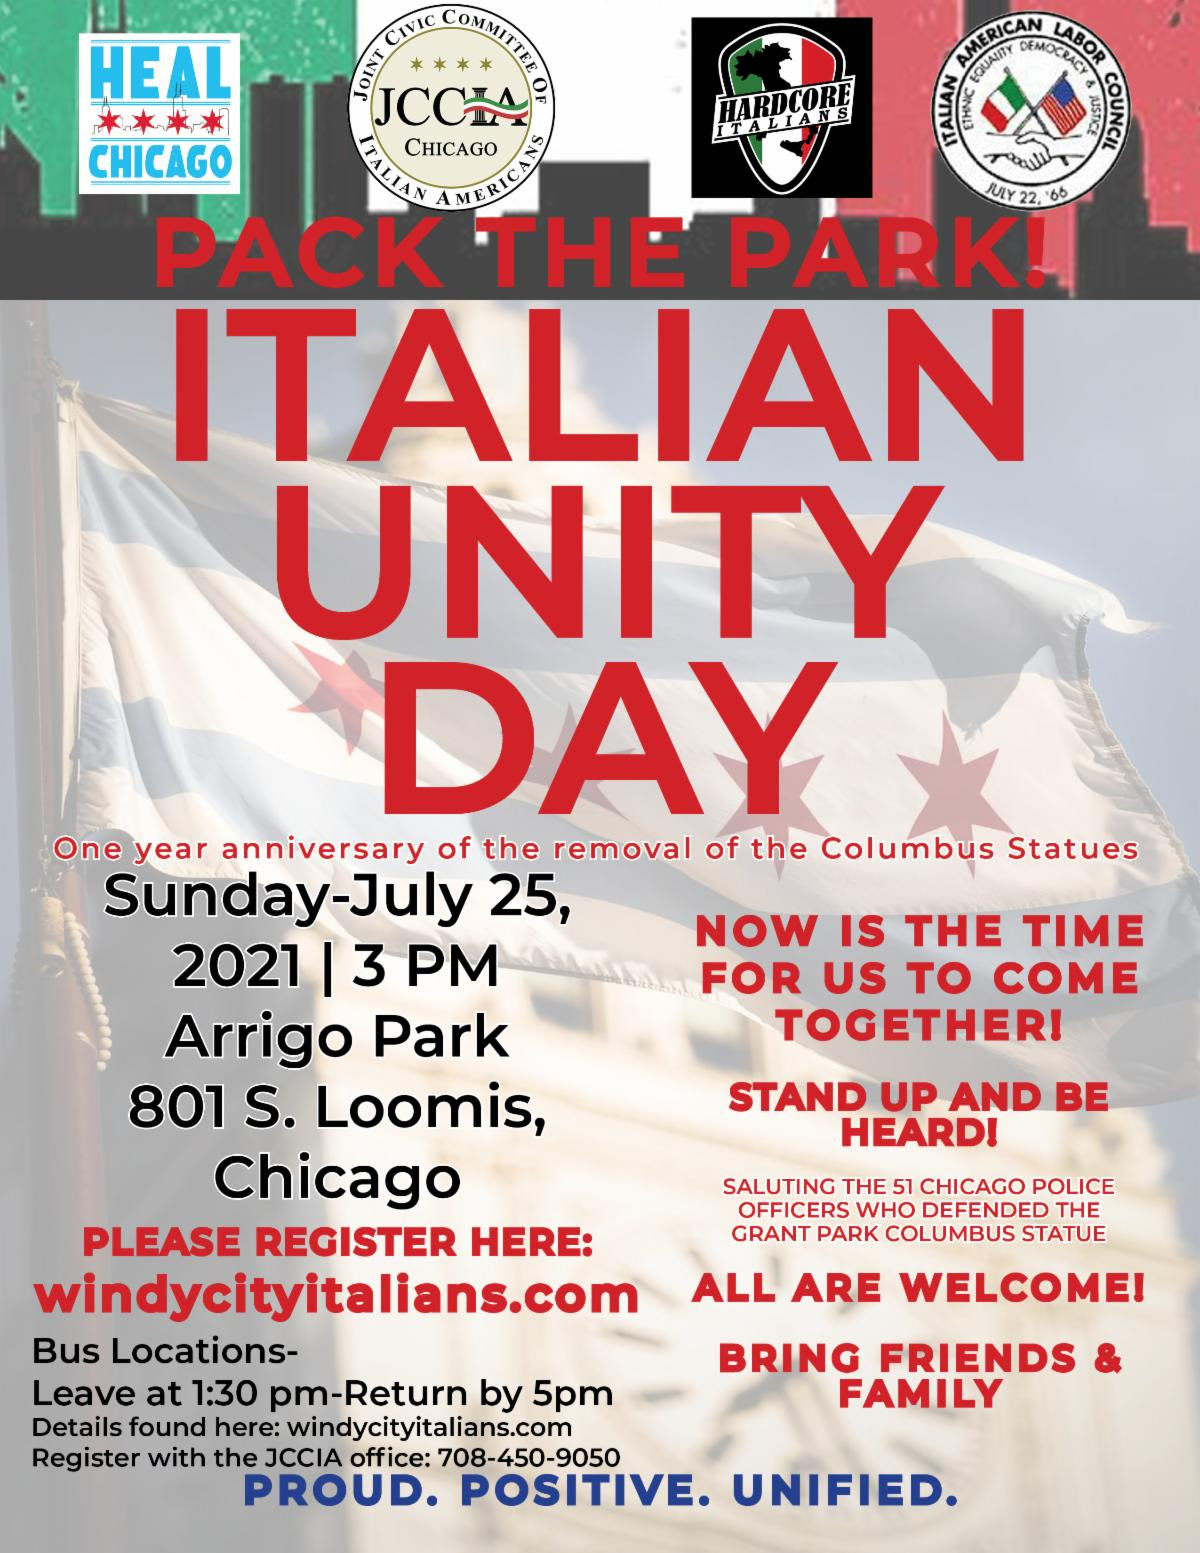 Pack the Park in Chicago on July 25!